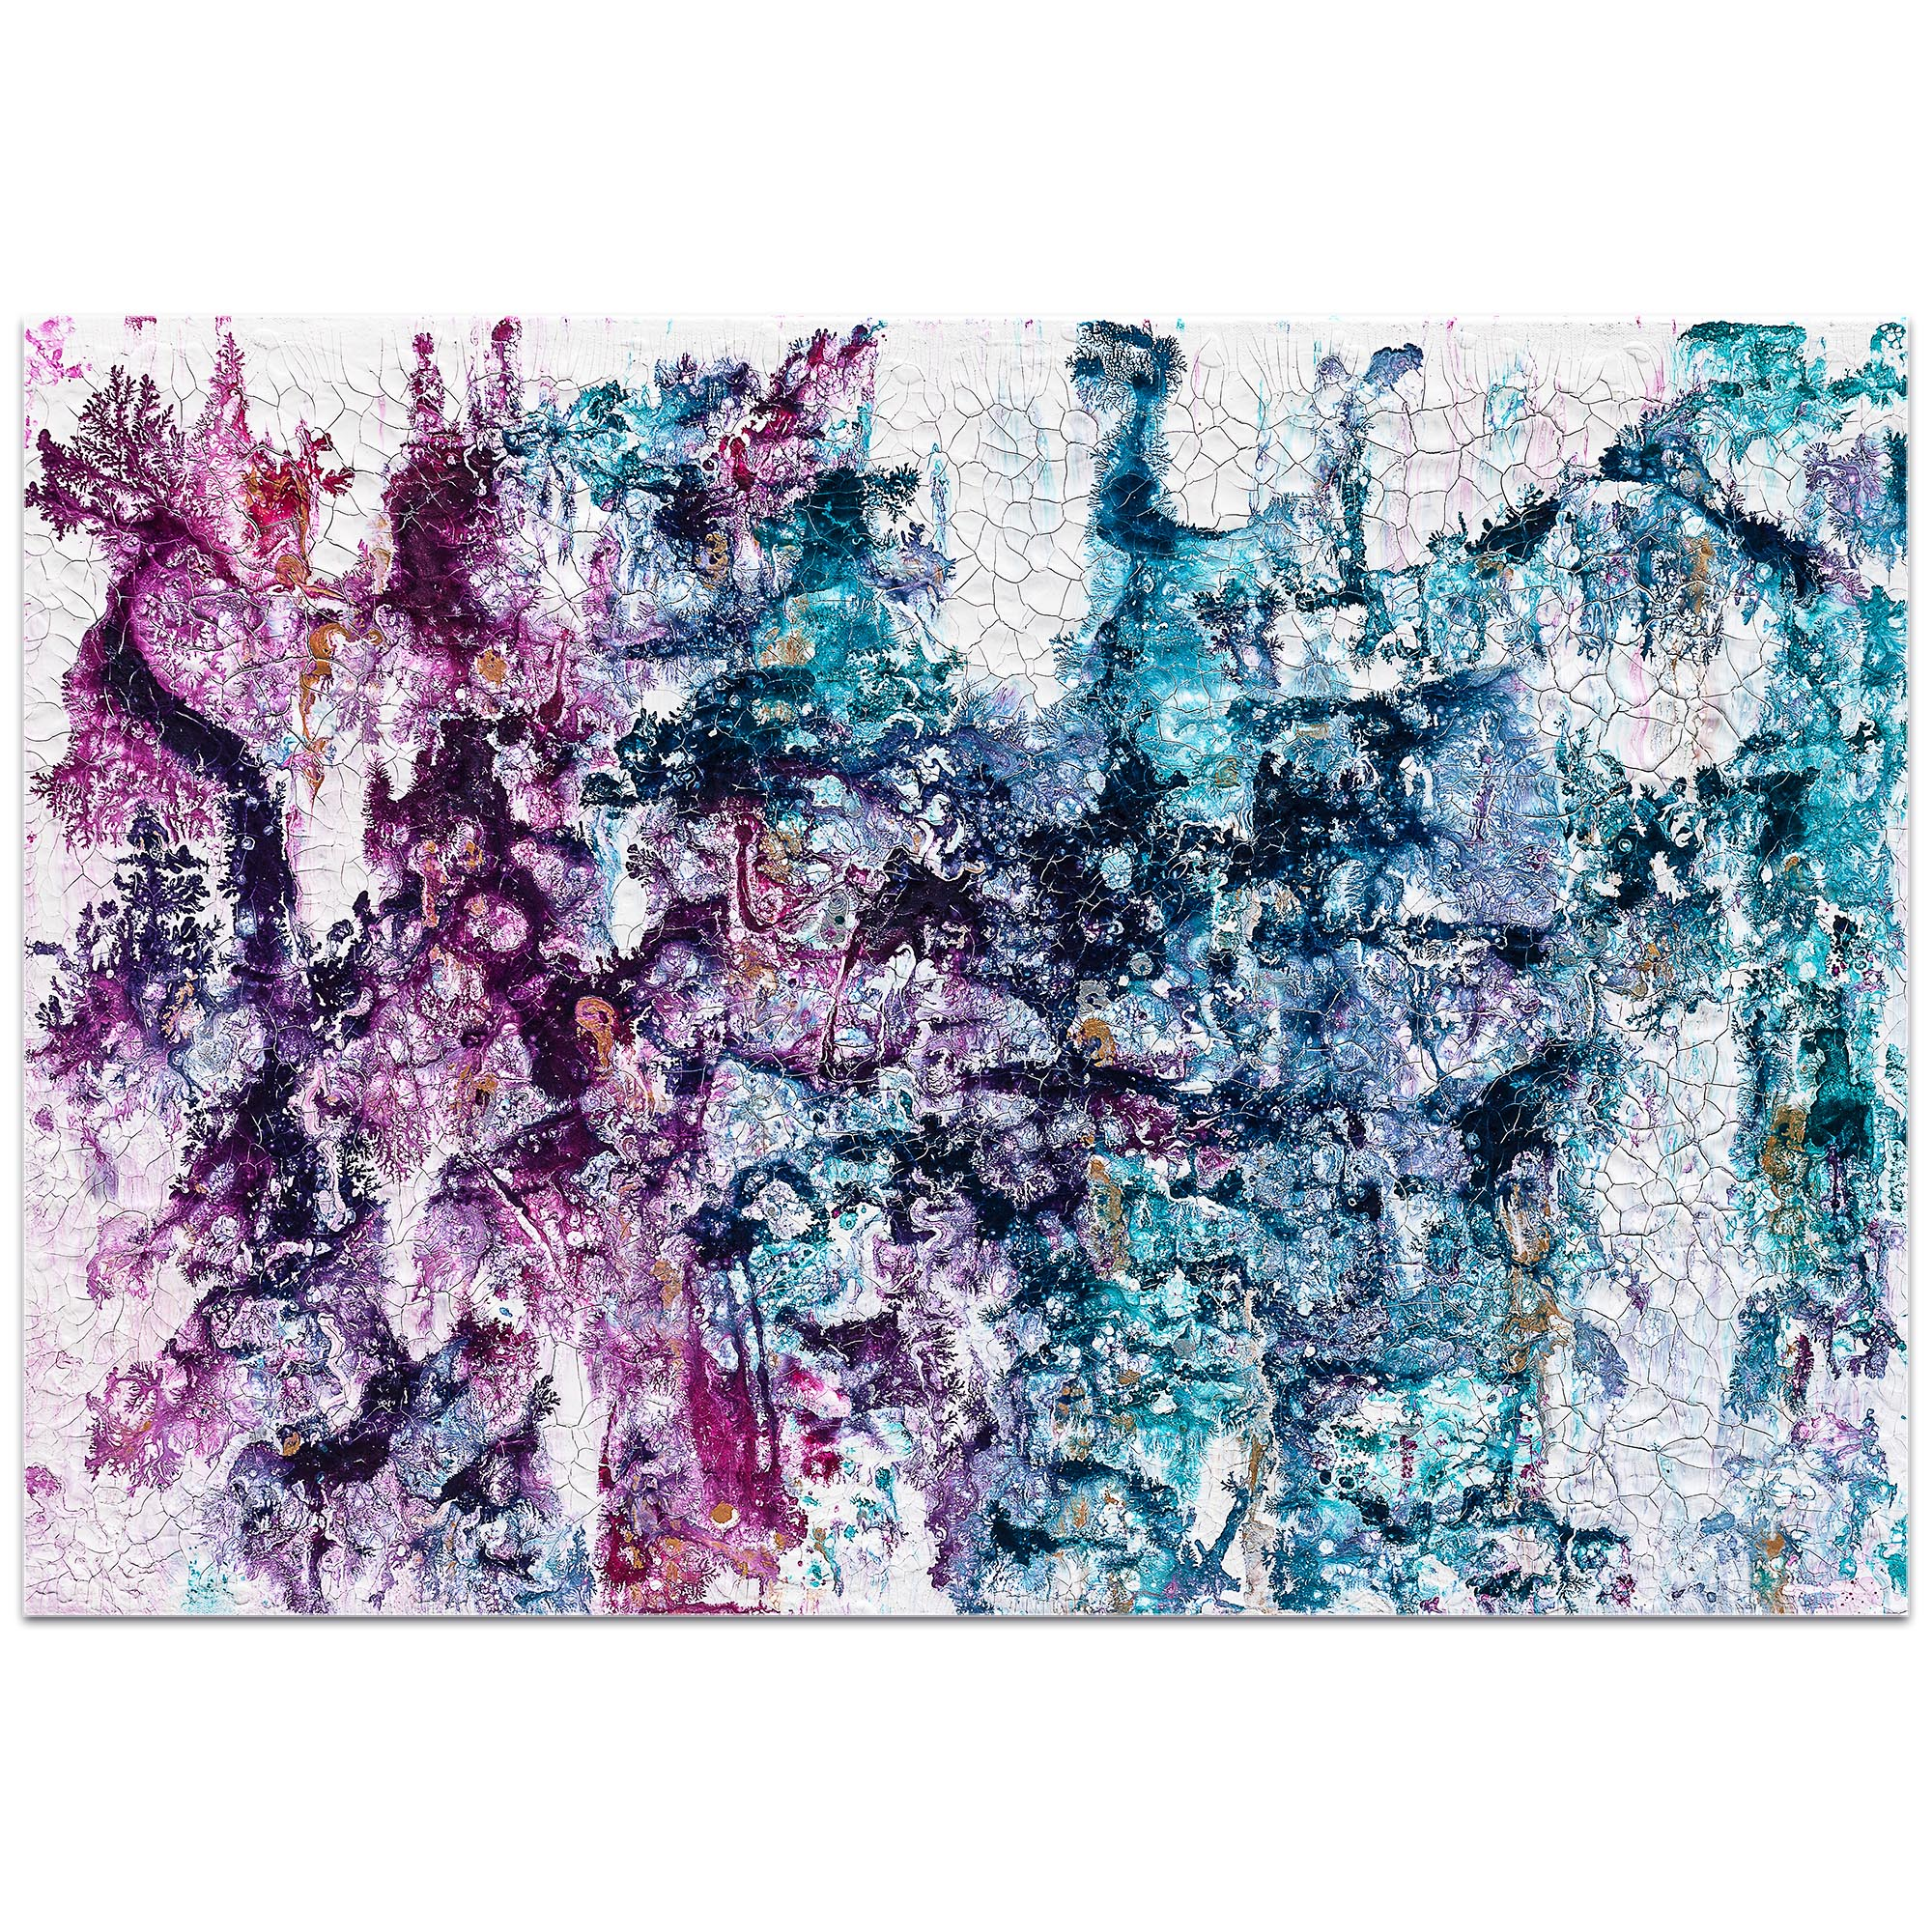 Abstract Wall Art 'Essence 1' - Colorful Urban Decor on Metal or Plexiglass - Image 2